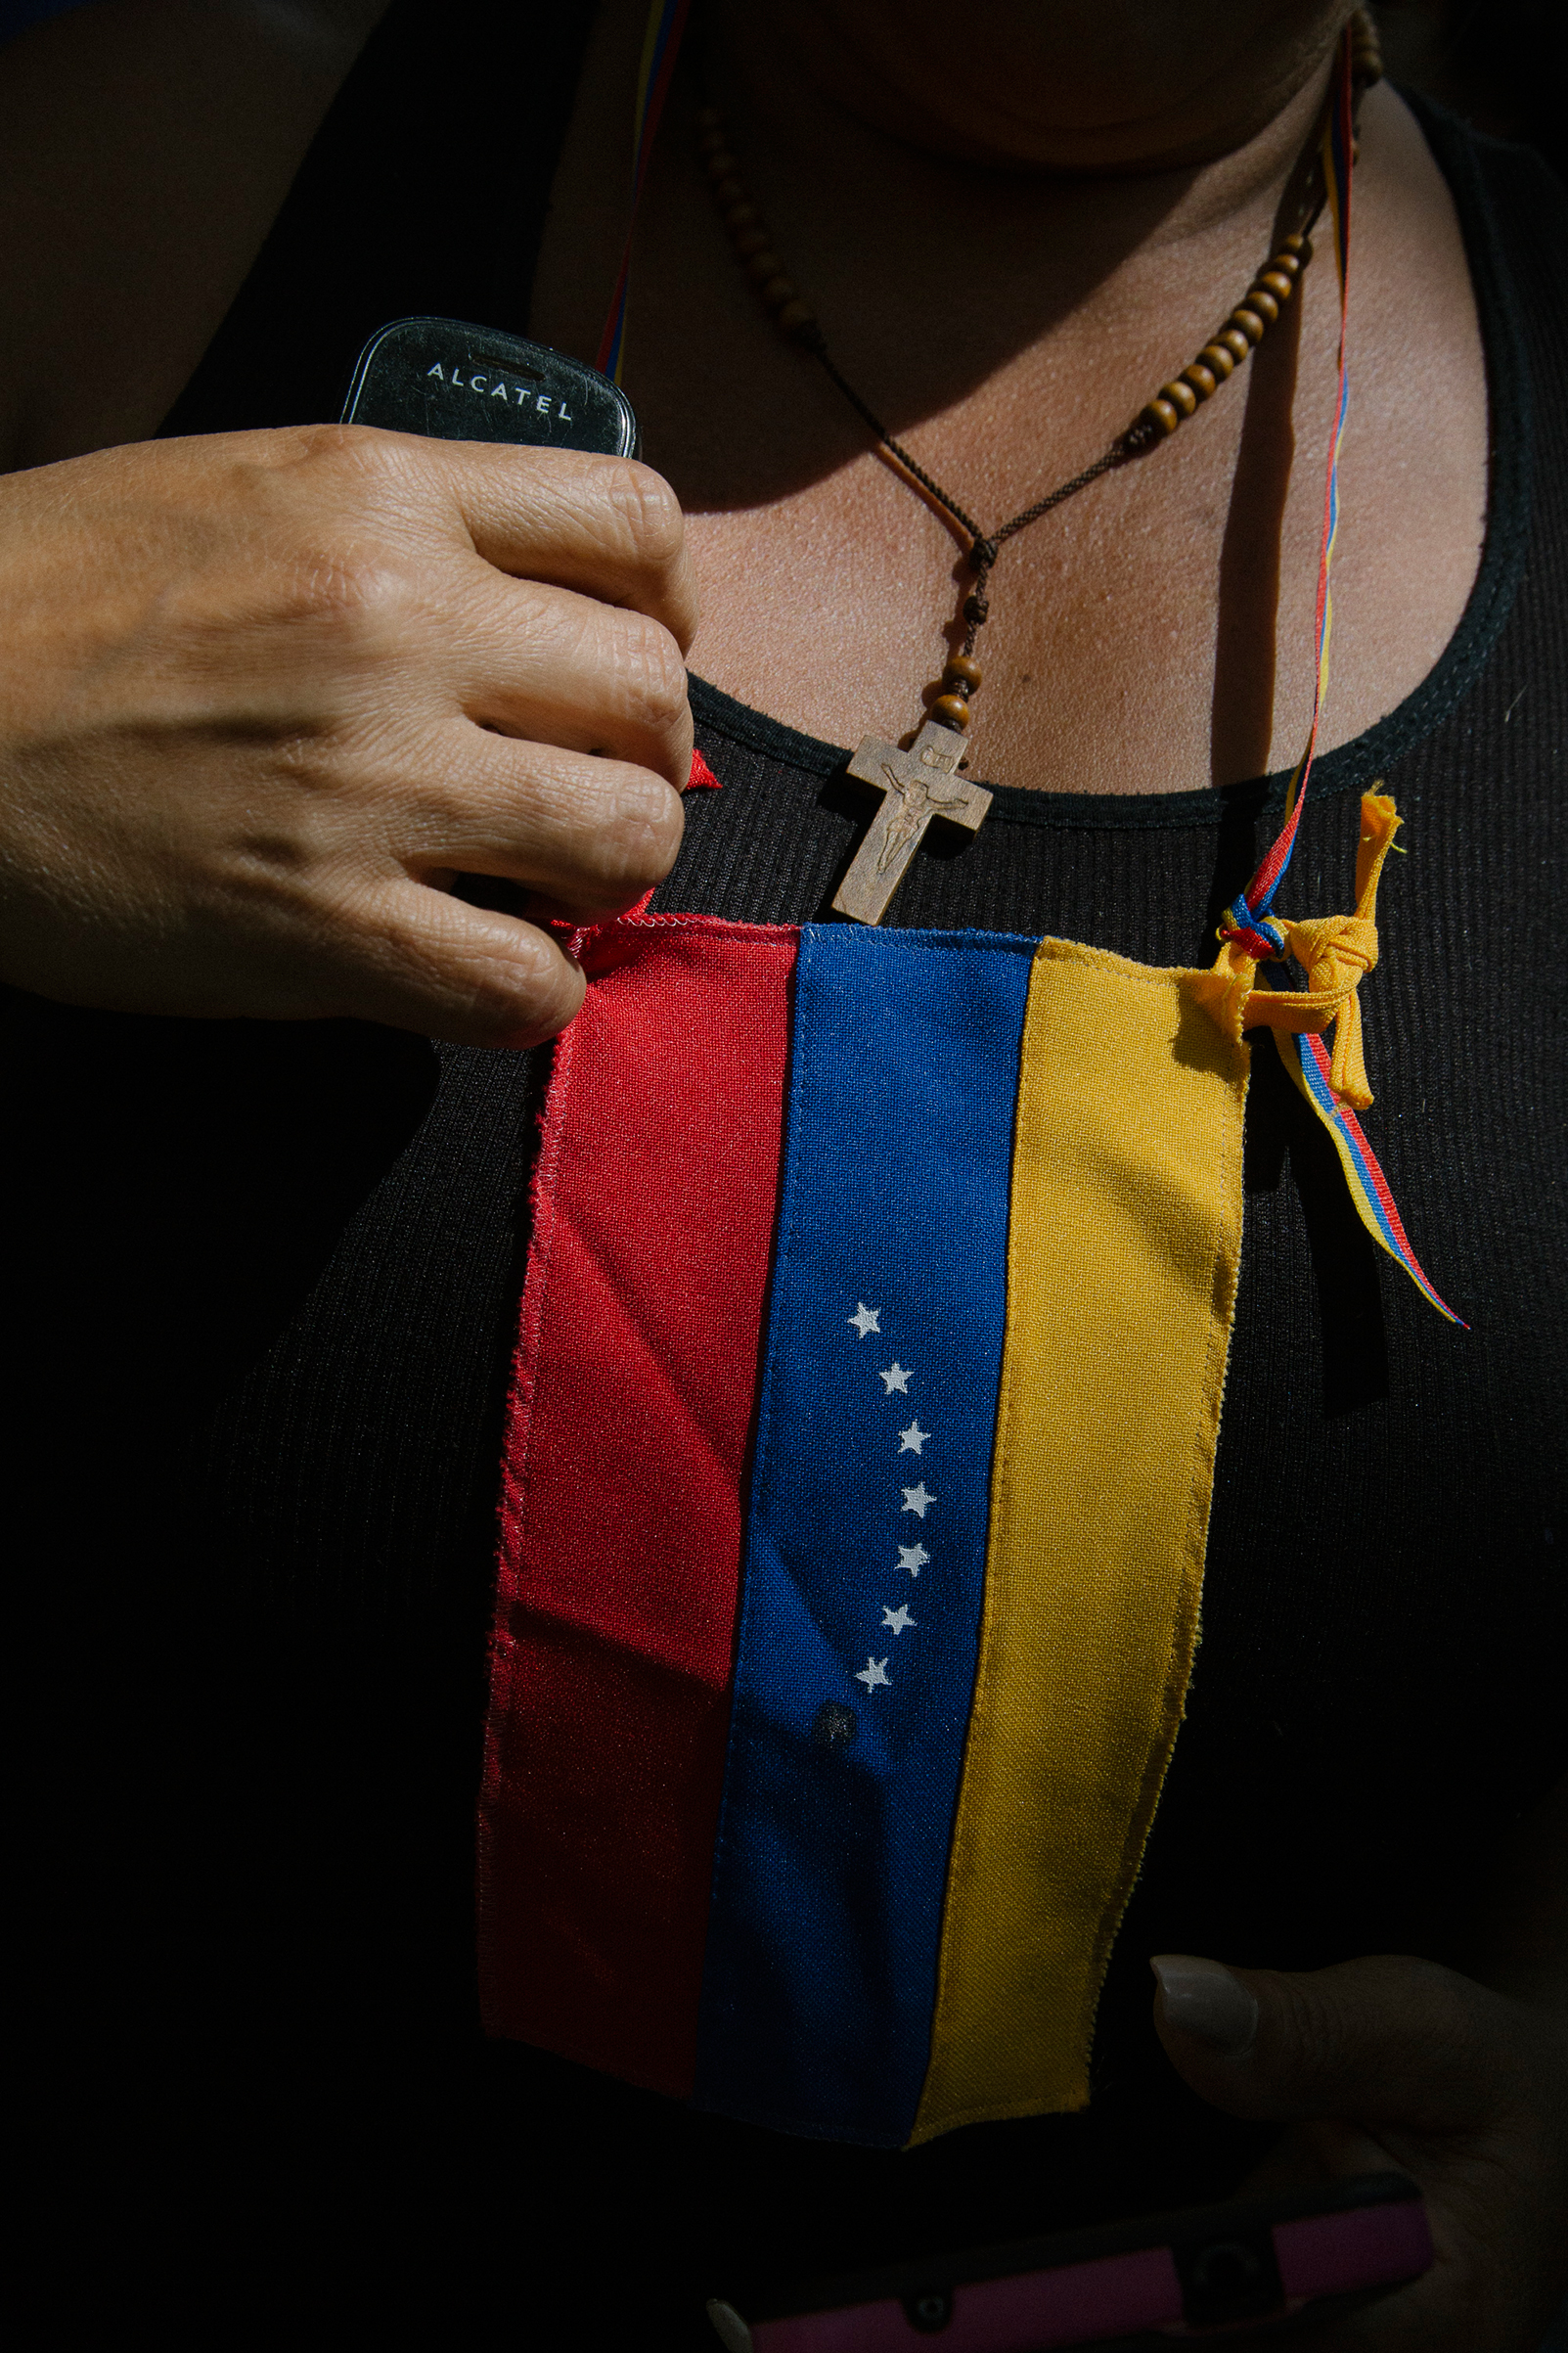 A woman fixes a flag on her chest during a news conference by Guaidó at the Bolivar Square of Chacao in Caracas on Jan. 25, 2019.